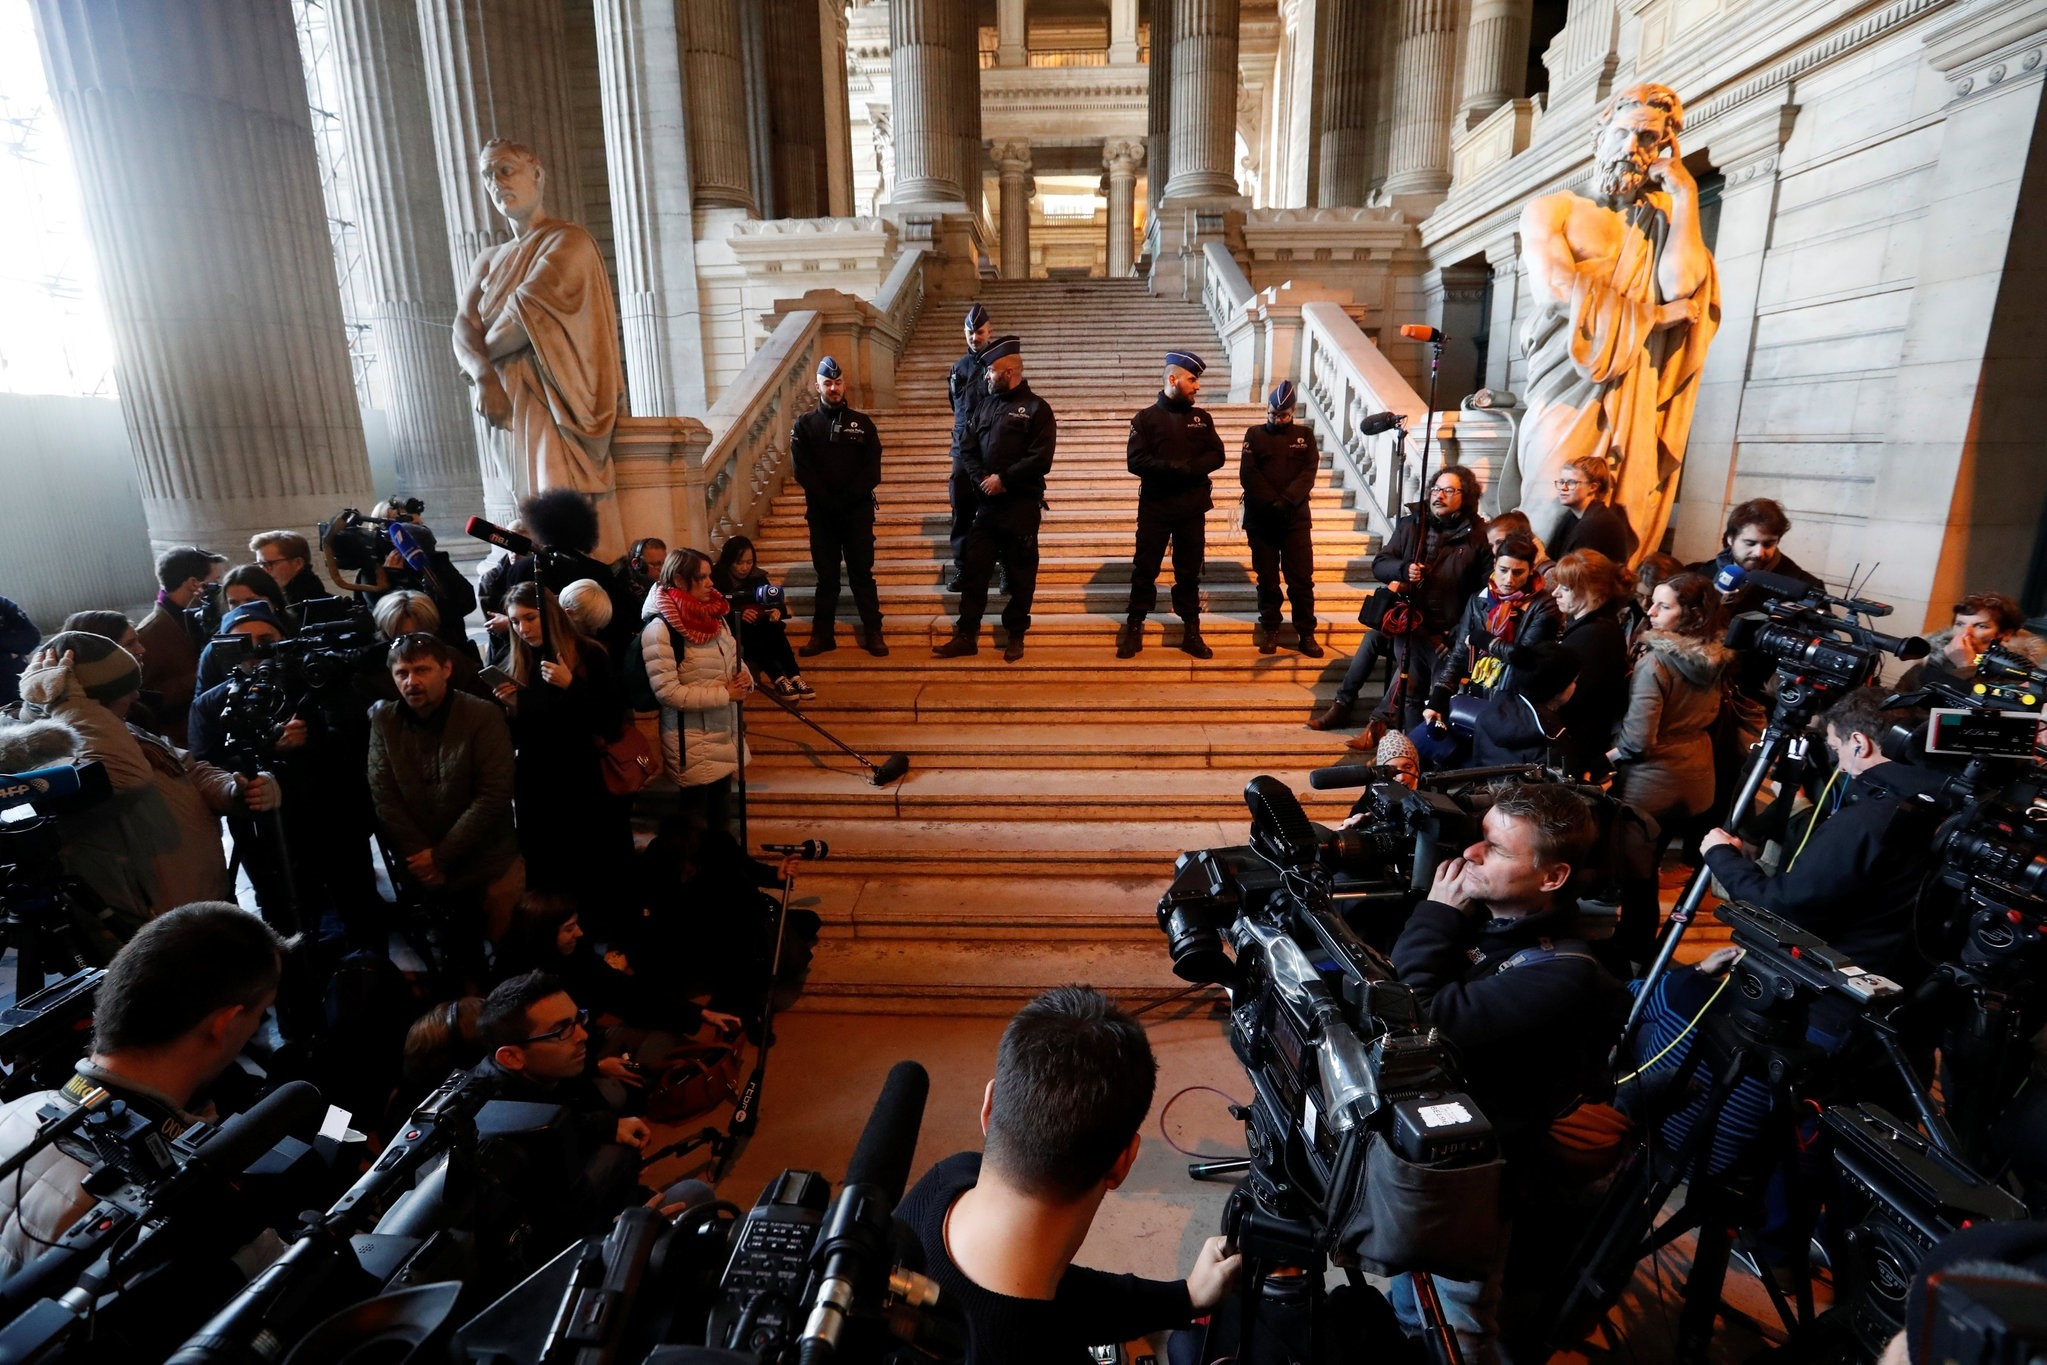 Members of the media await the arrival of sacked Catalan President Carles Puigdemont at a Belgian court, in Brussels, Belgium, November 17, 2017. (REUTERS Photo)